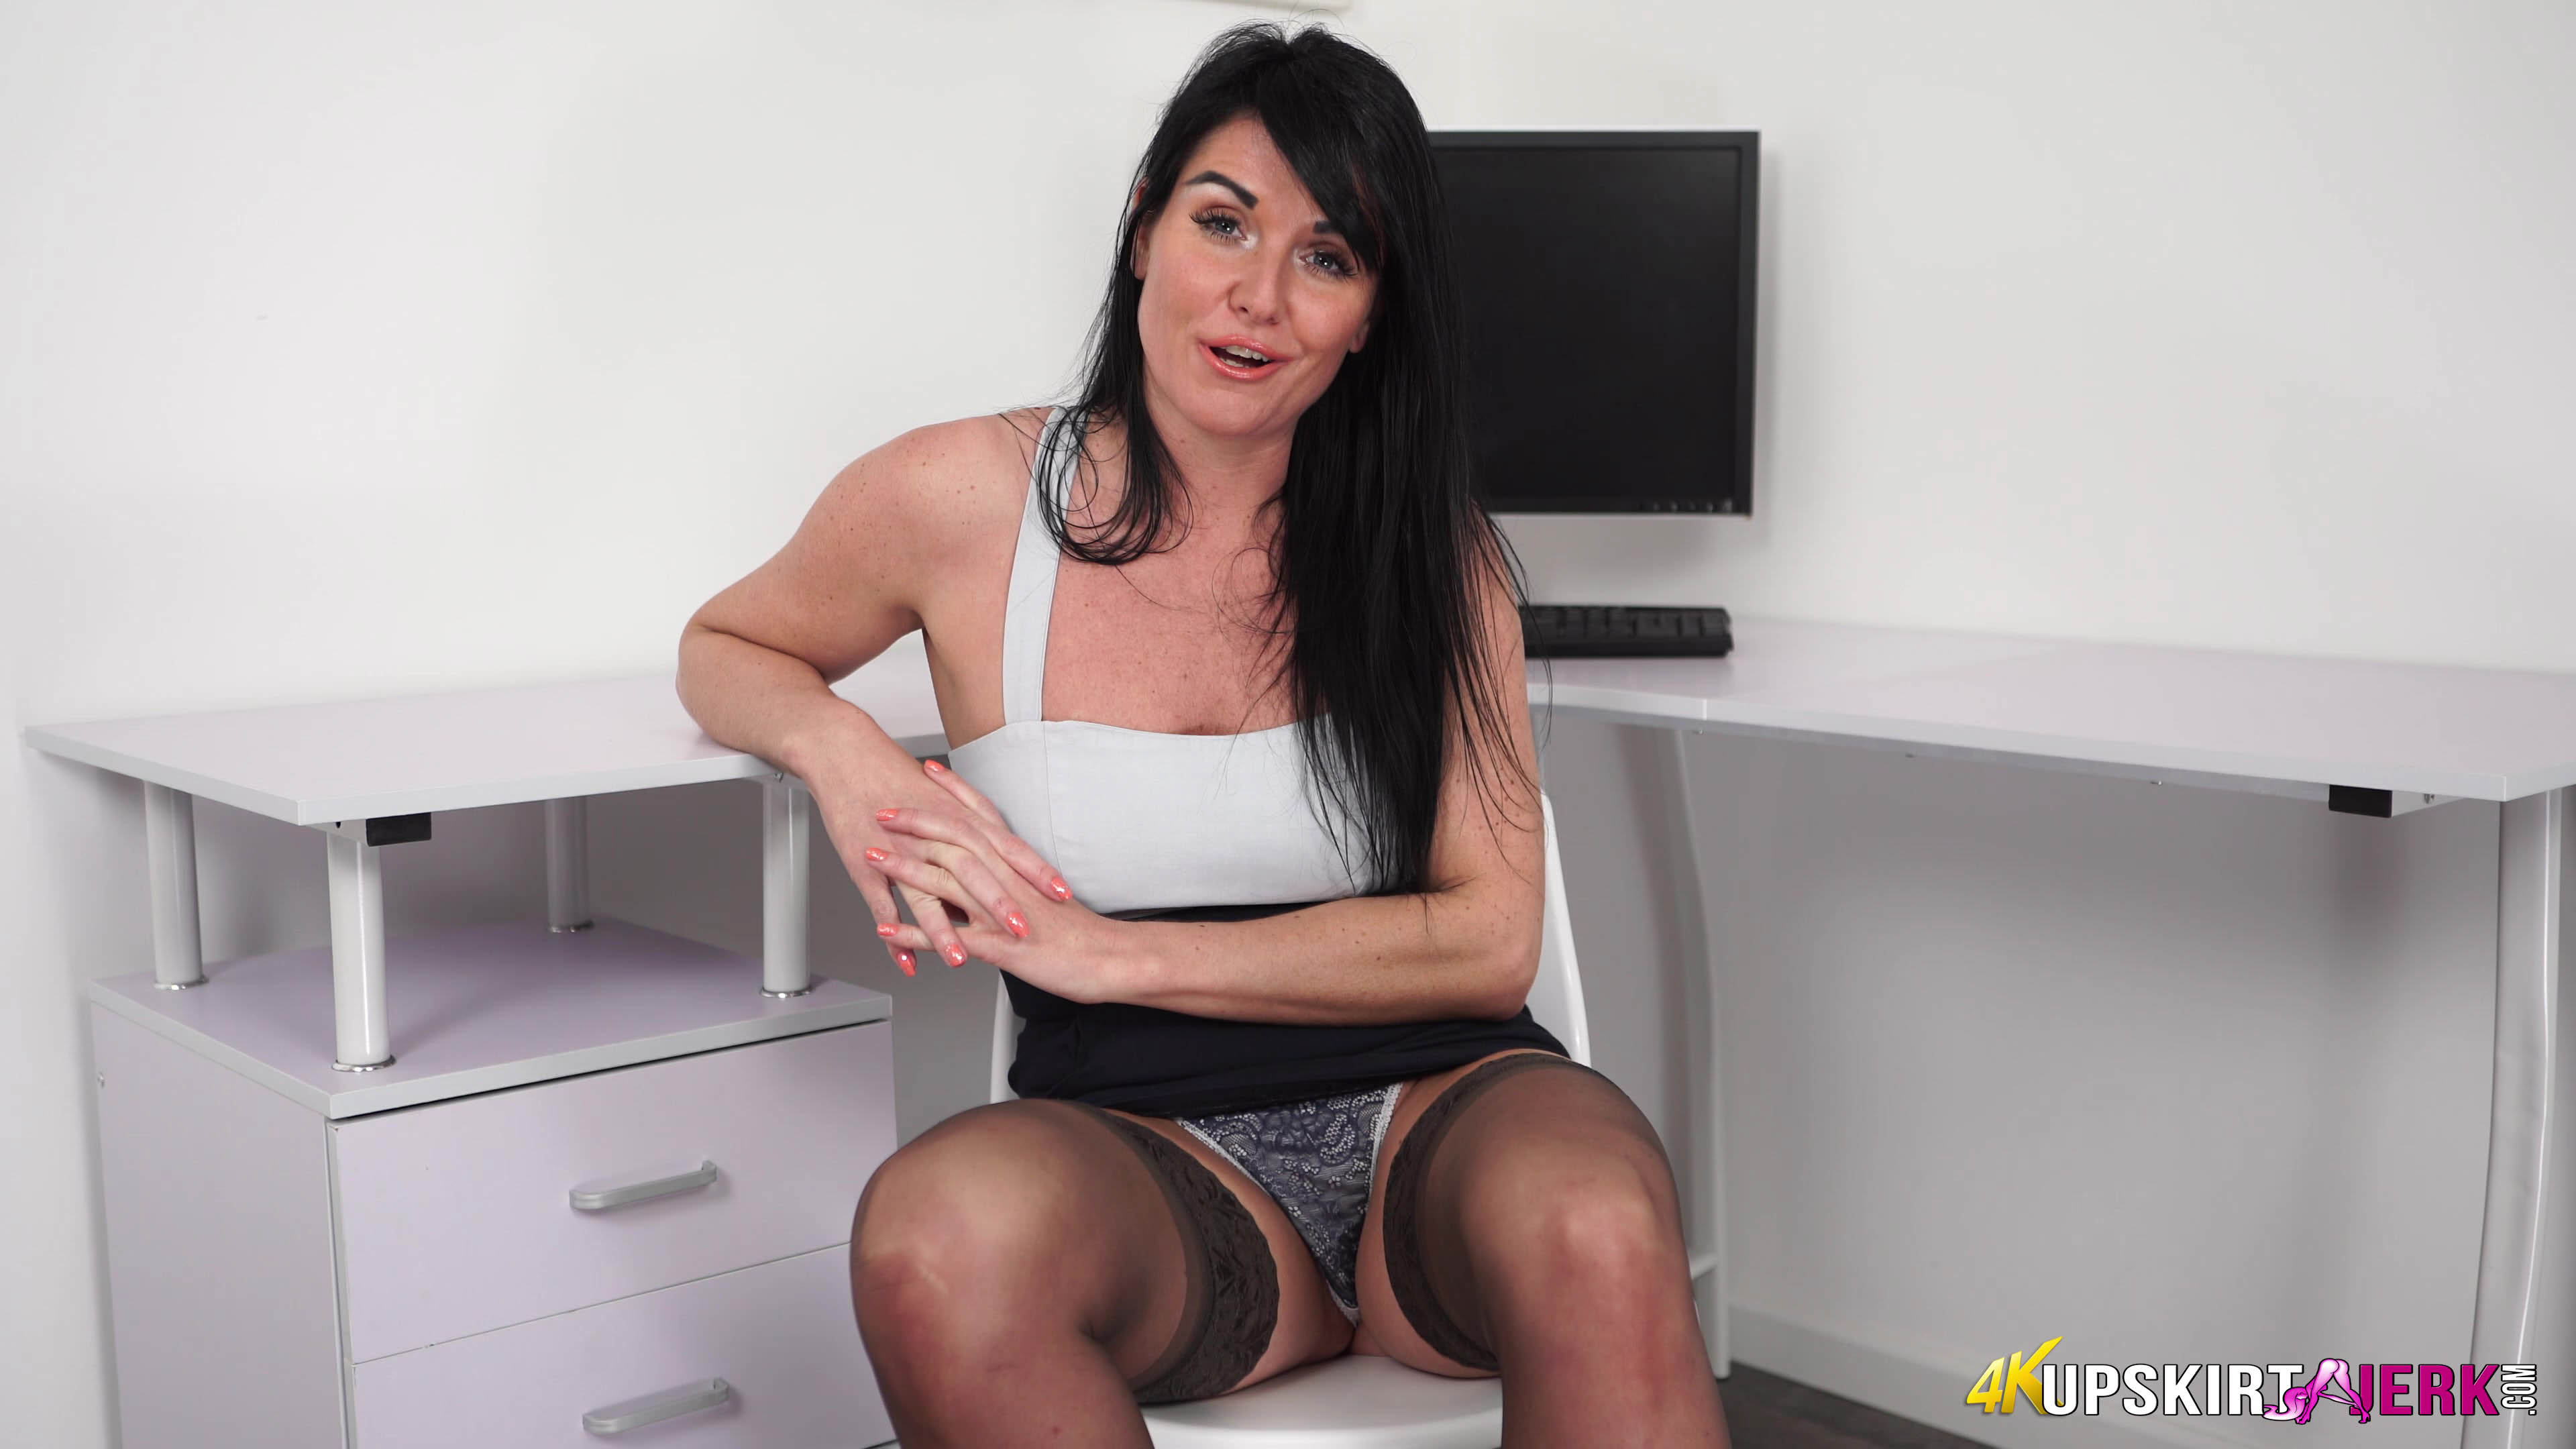 delicious upskirt perversions with prudish british girl  #7